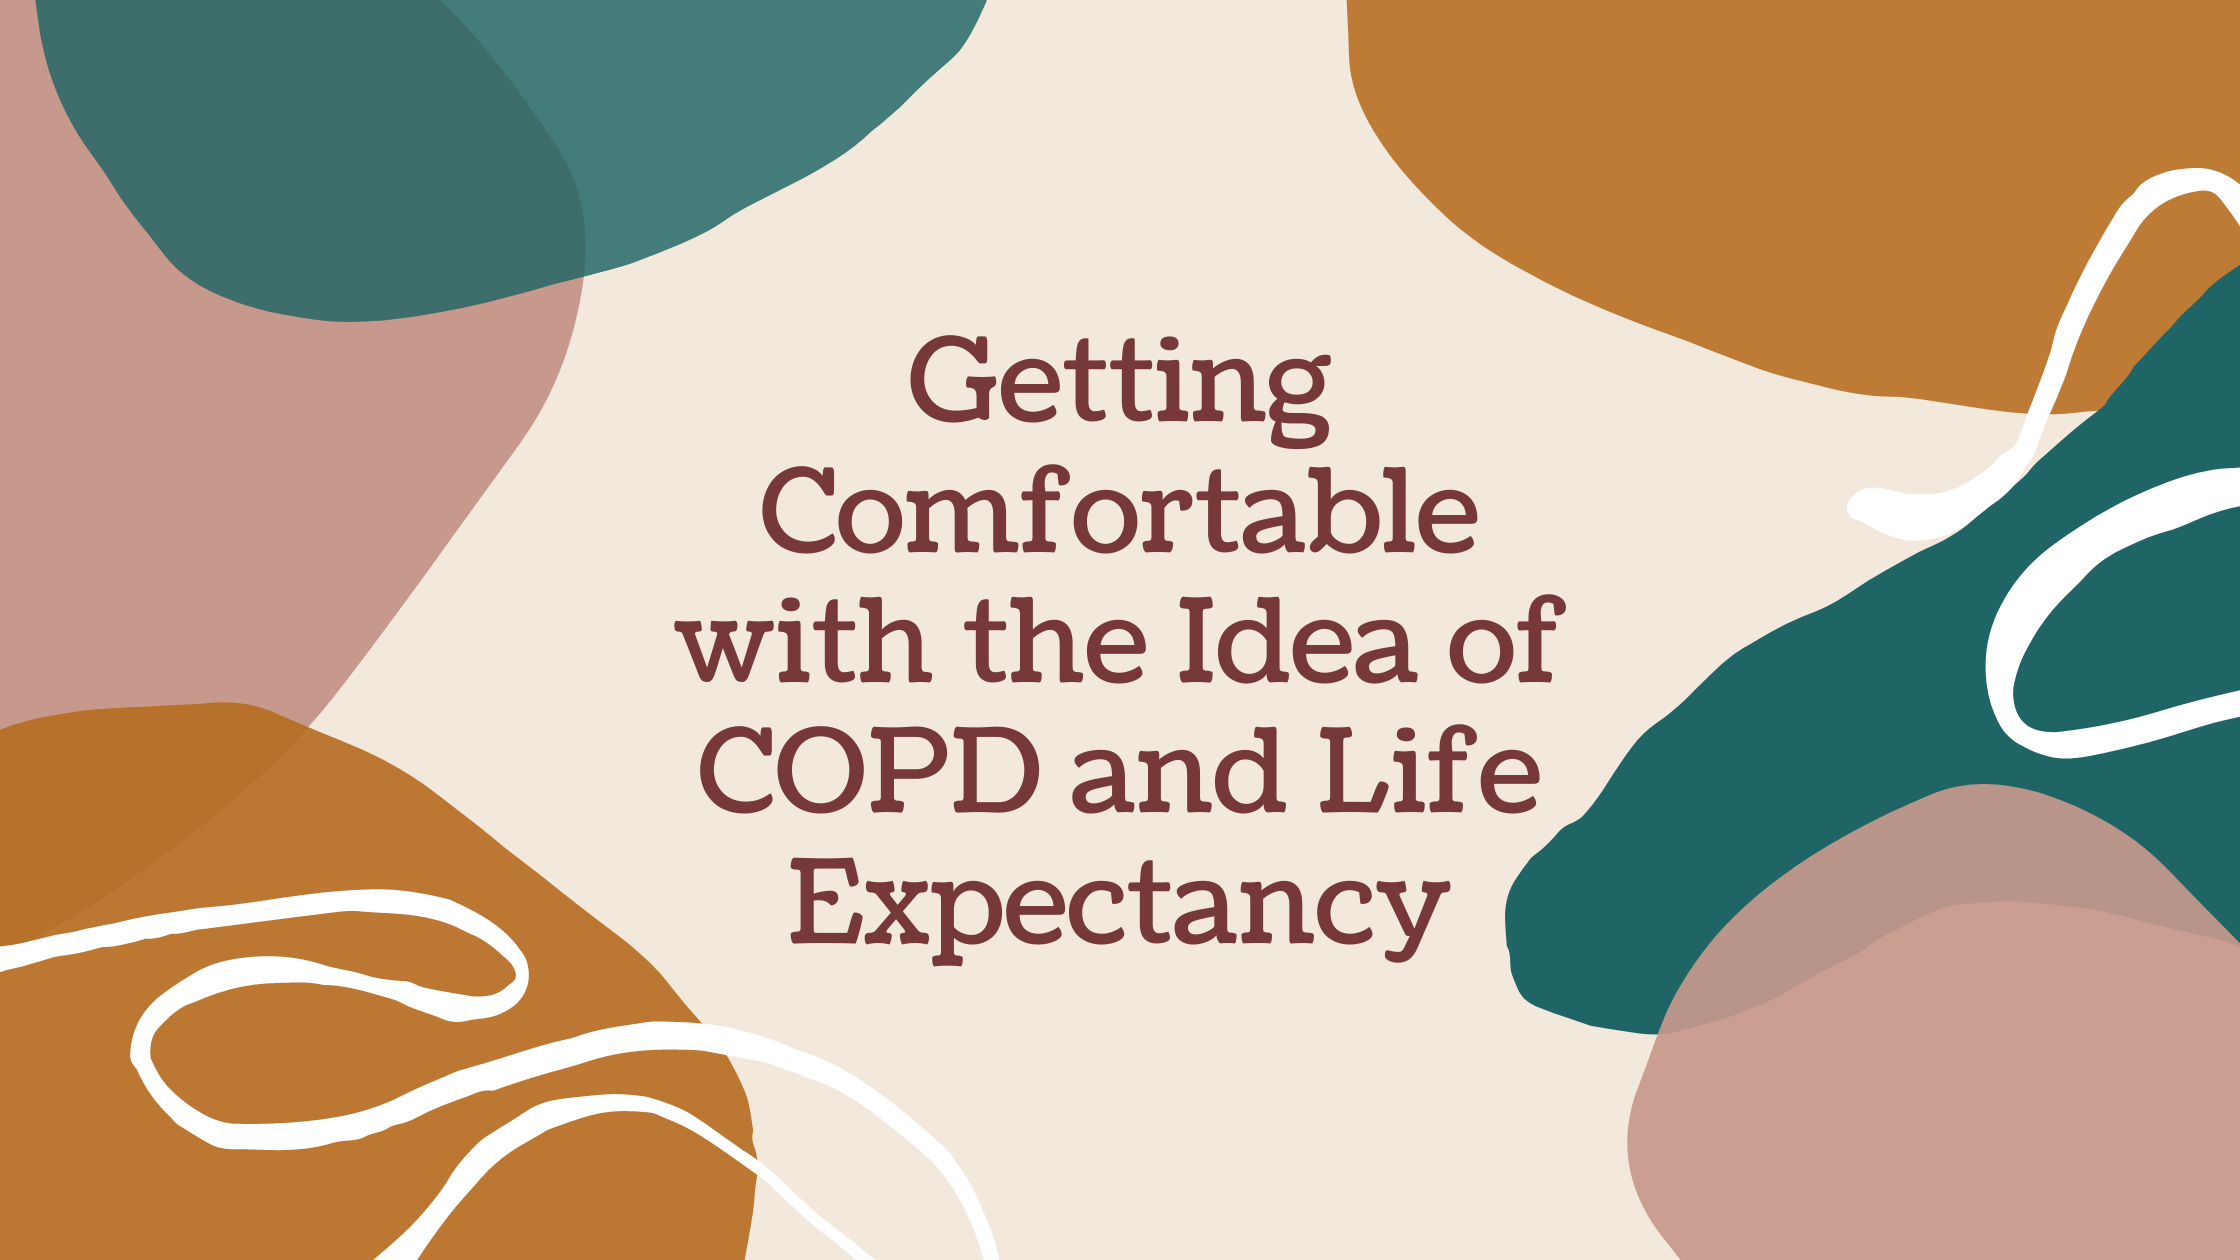 Getting Comfortable with the Idea of COPD and Life Expectancy